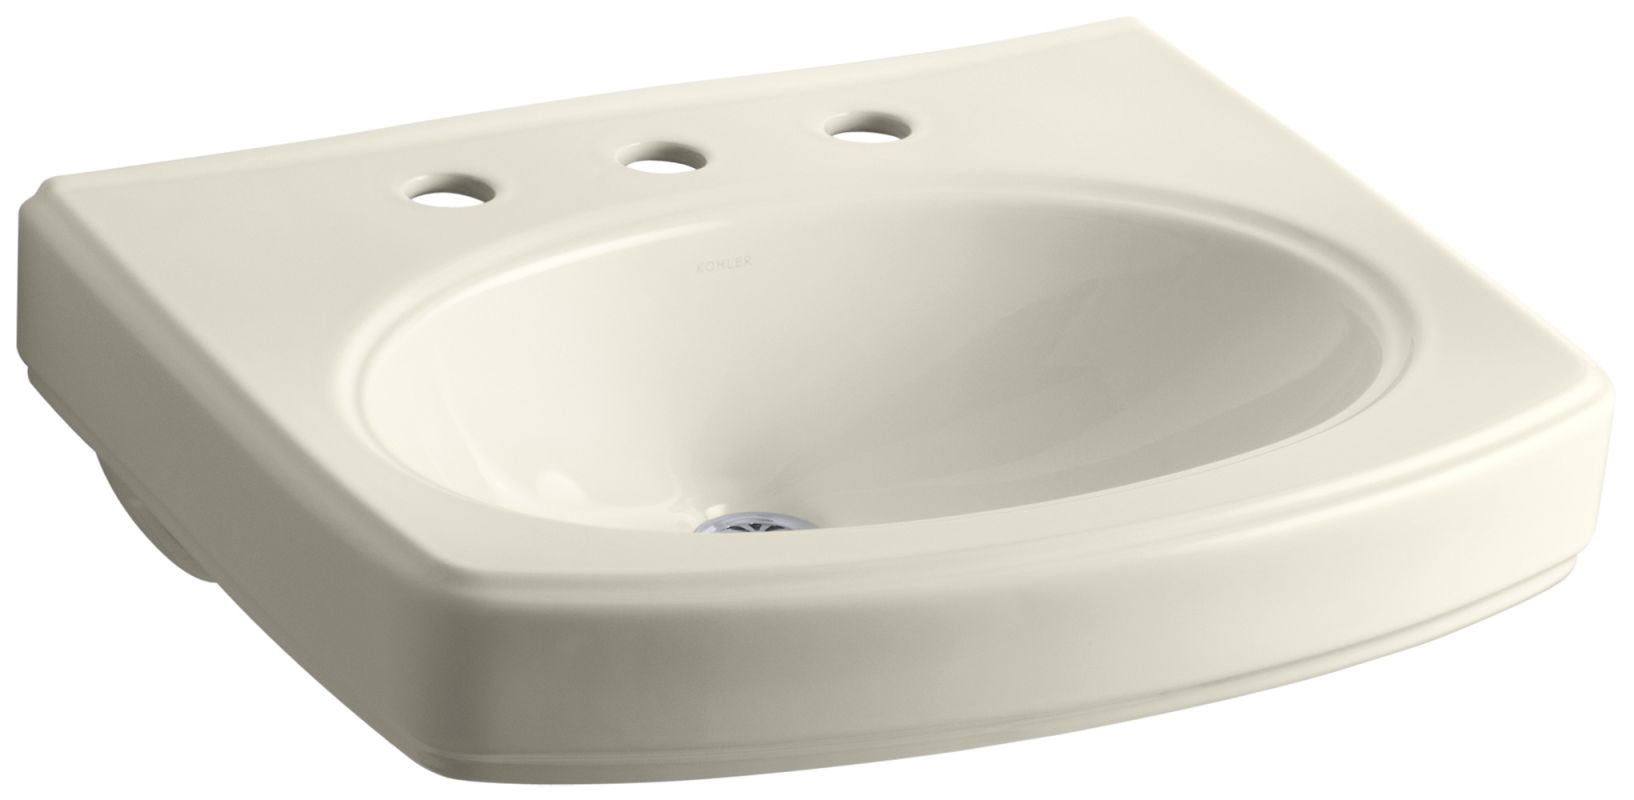 ... Bathroom Sink with 3 Holes Drilled and Overflow - FaucetDirect.com